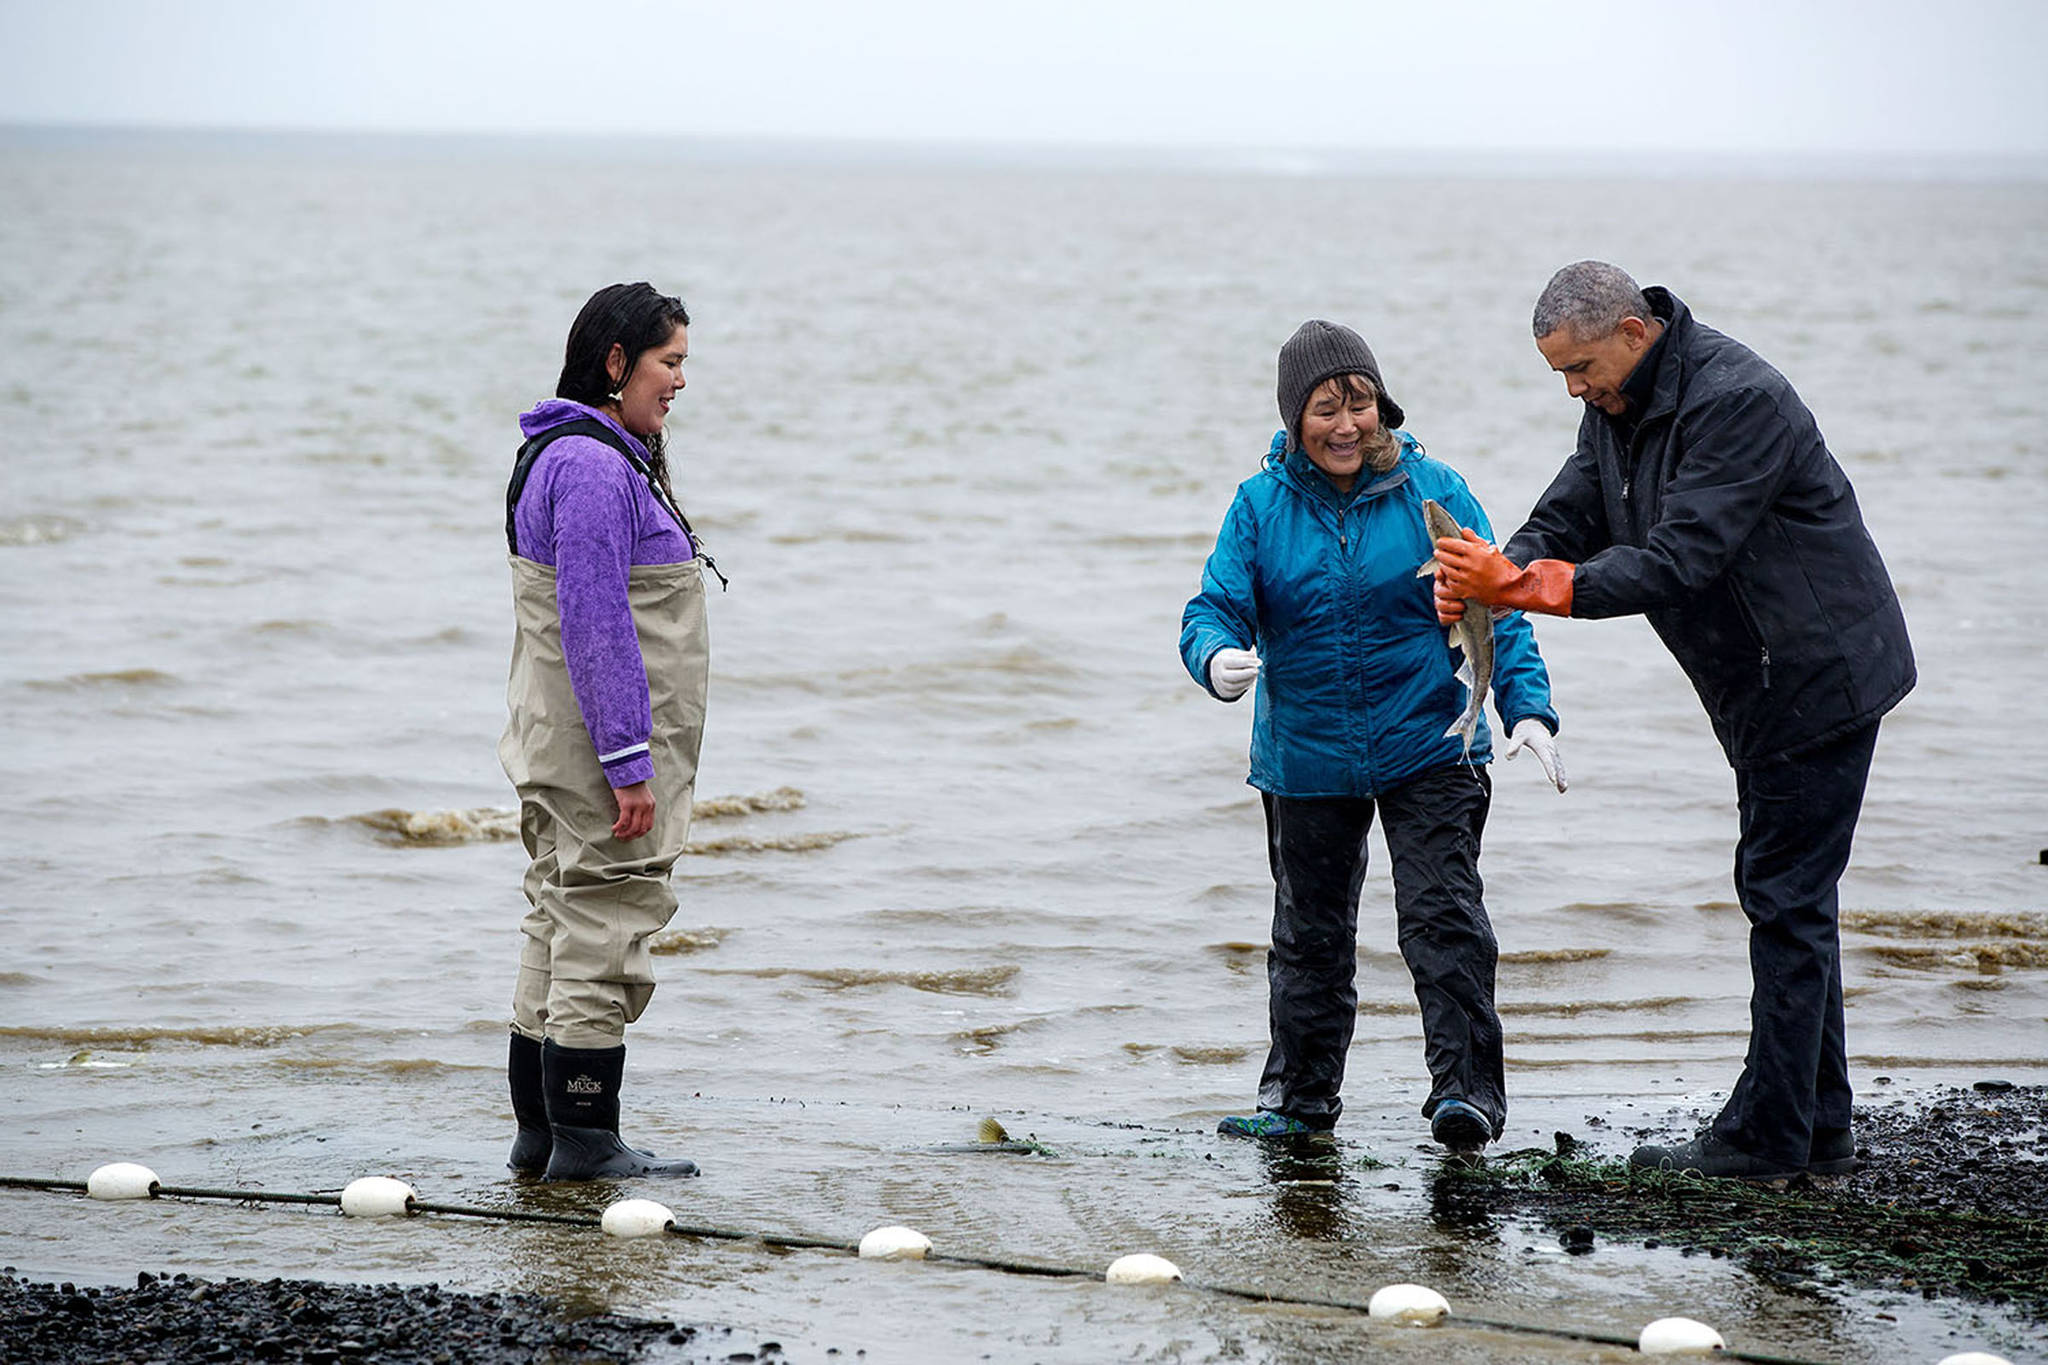 In this September 2, 2015 photo, former President Barack Obama with two Alaskans and a soon-to-be-viral spawning salmon on Kanakanak Beach in Dillingham, Alaska. (Courtesy Photo | The White House)